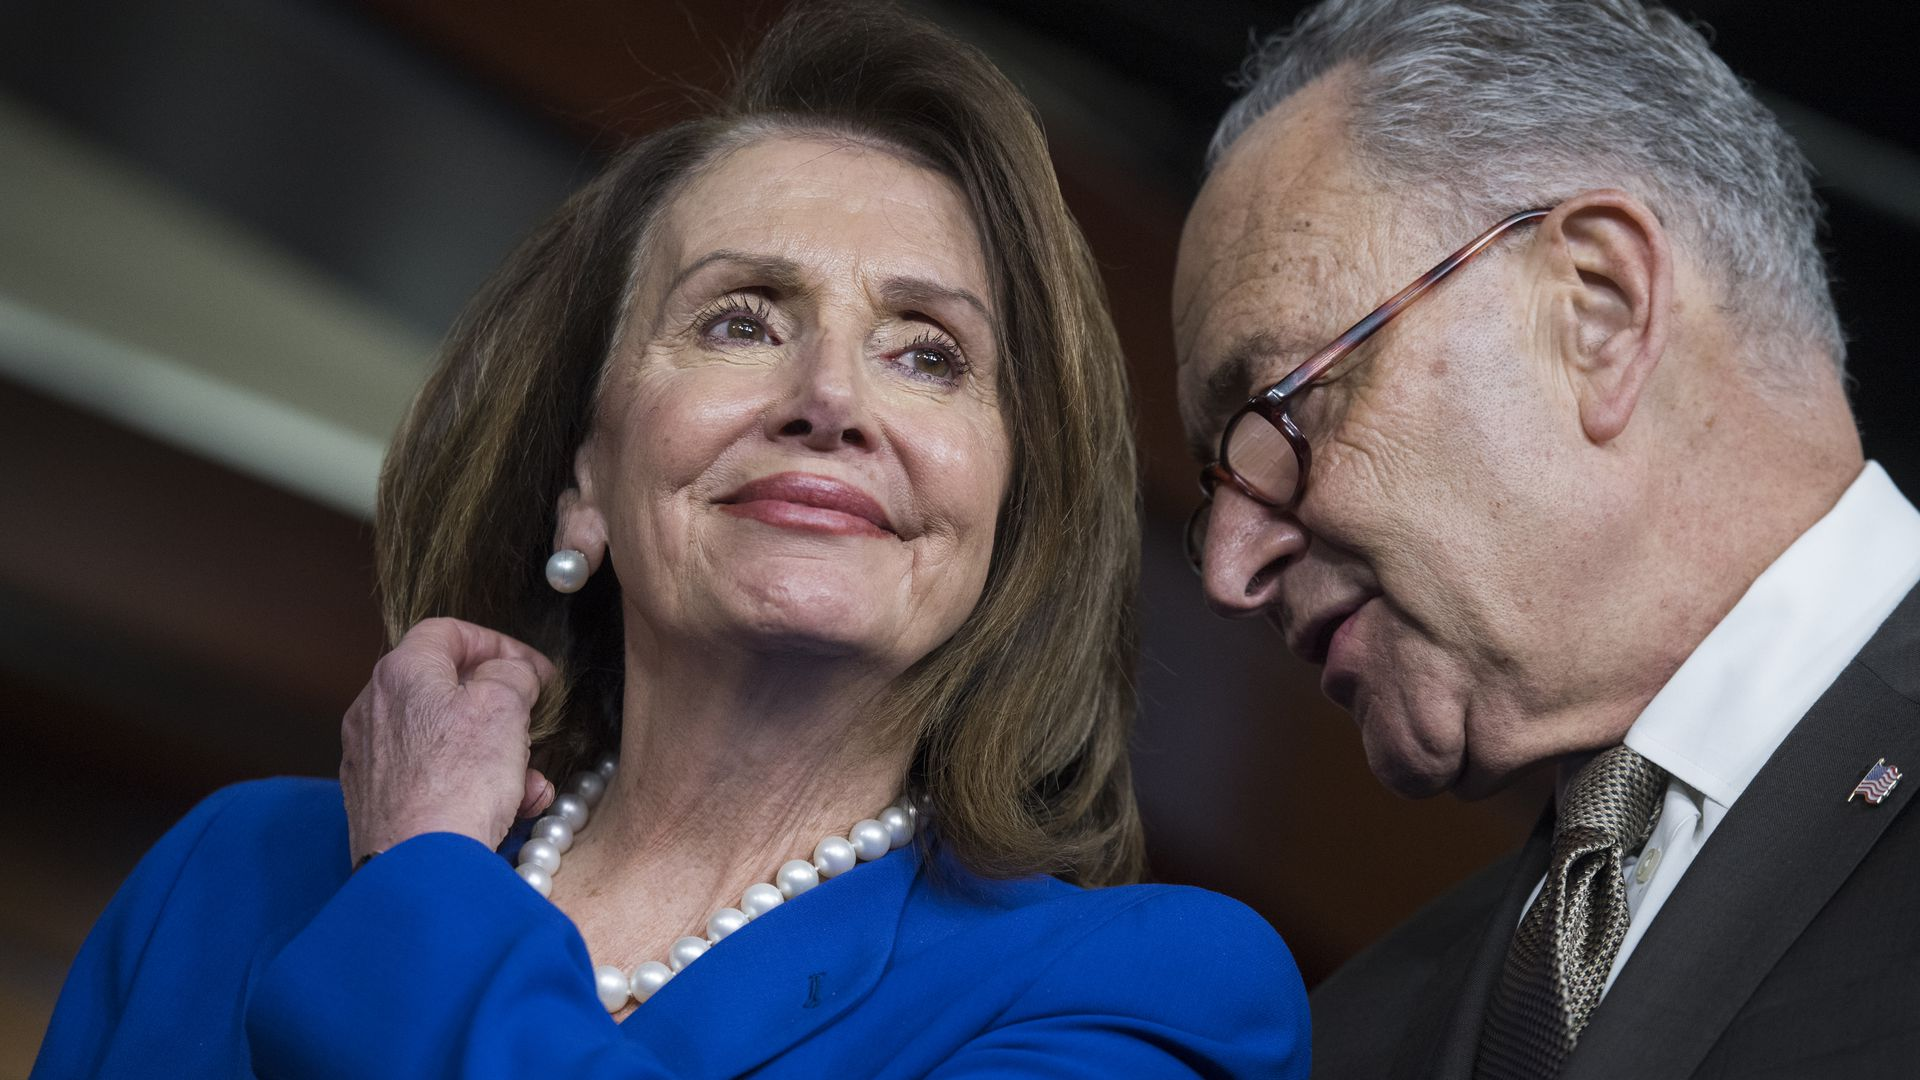 Nancy Pelosi and CHuck Shumer speak to each other